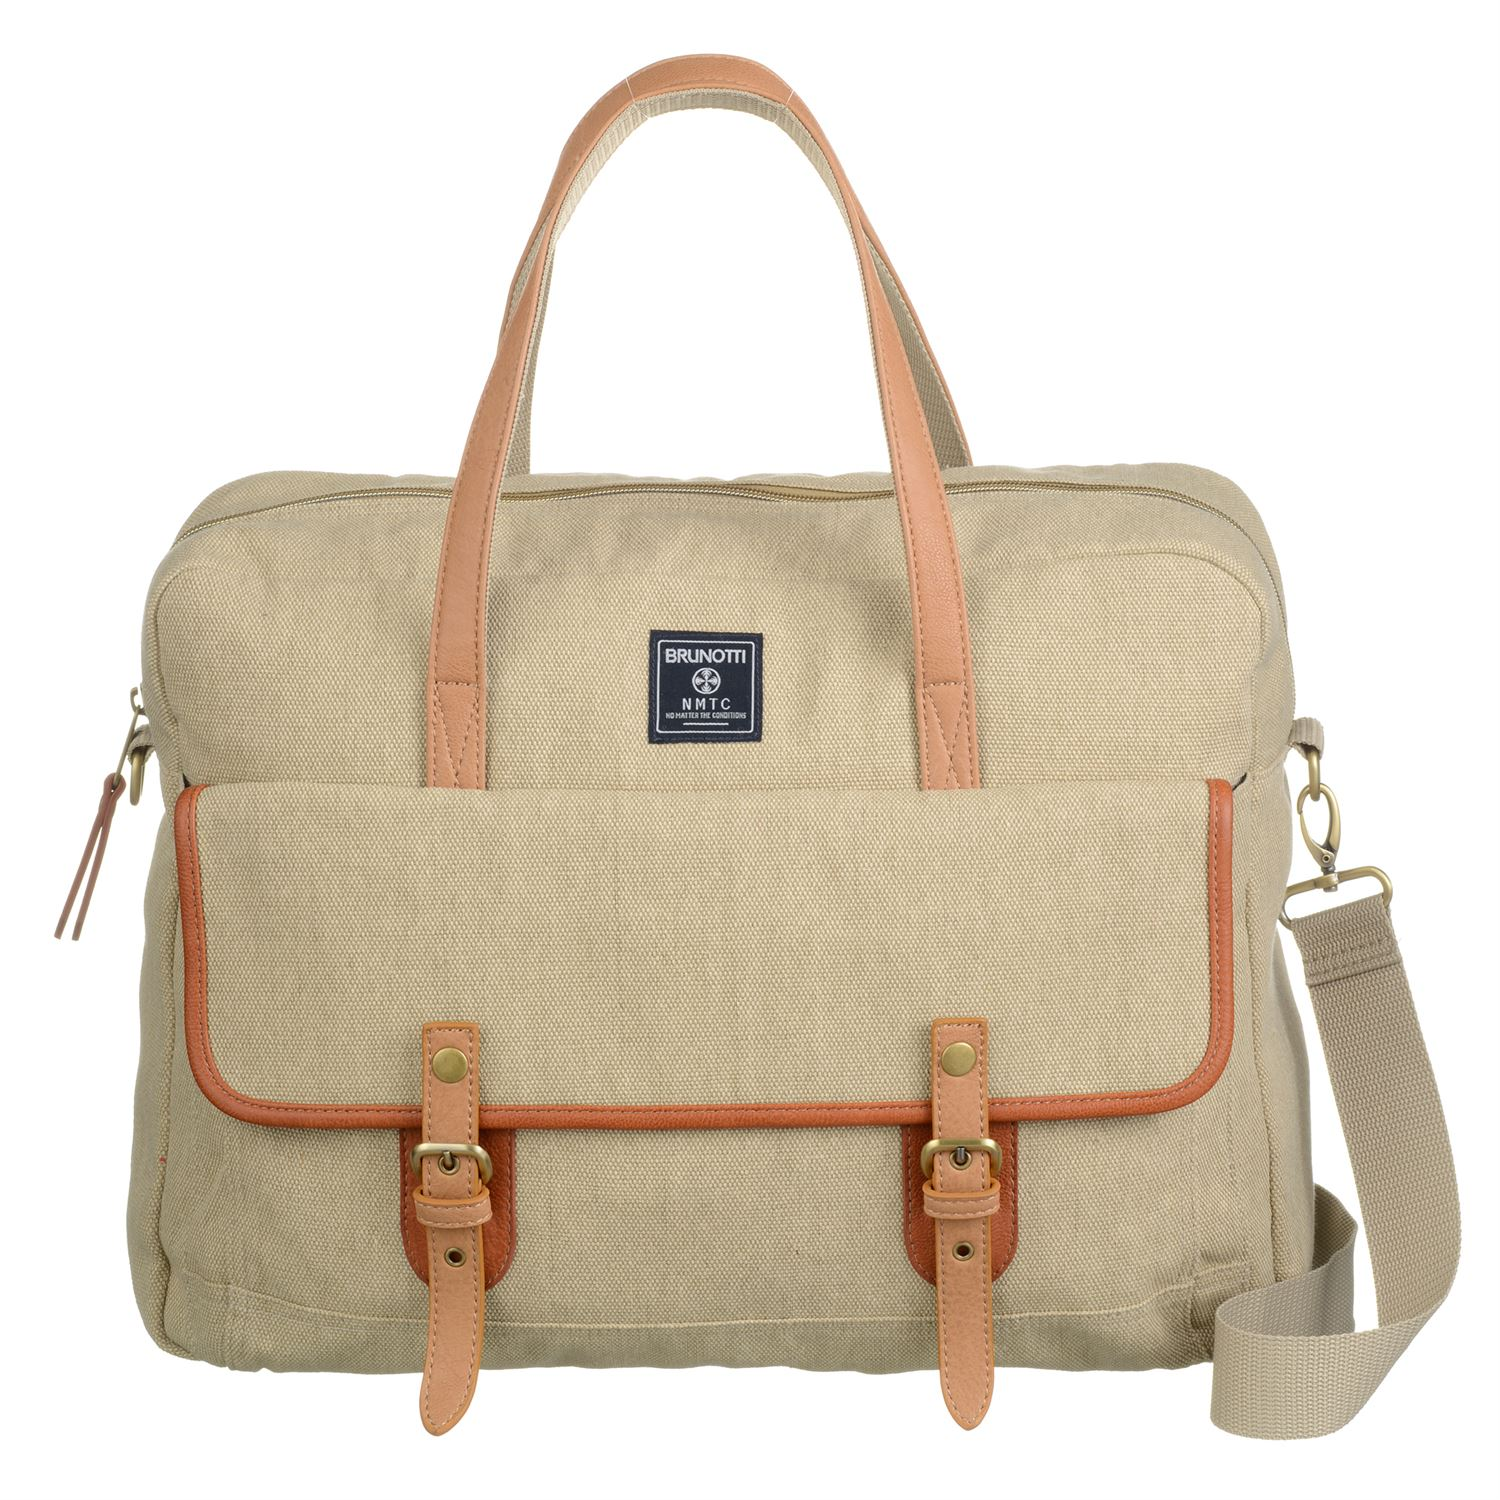 Brunotti BB Boston Bag